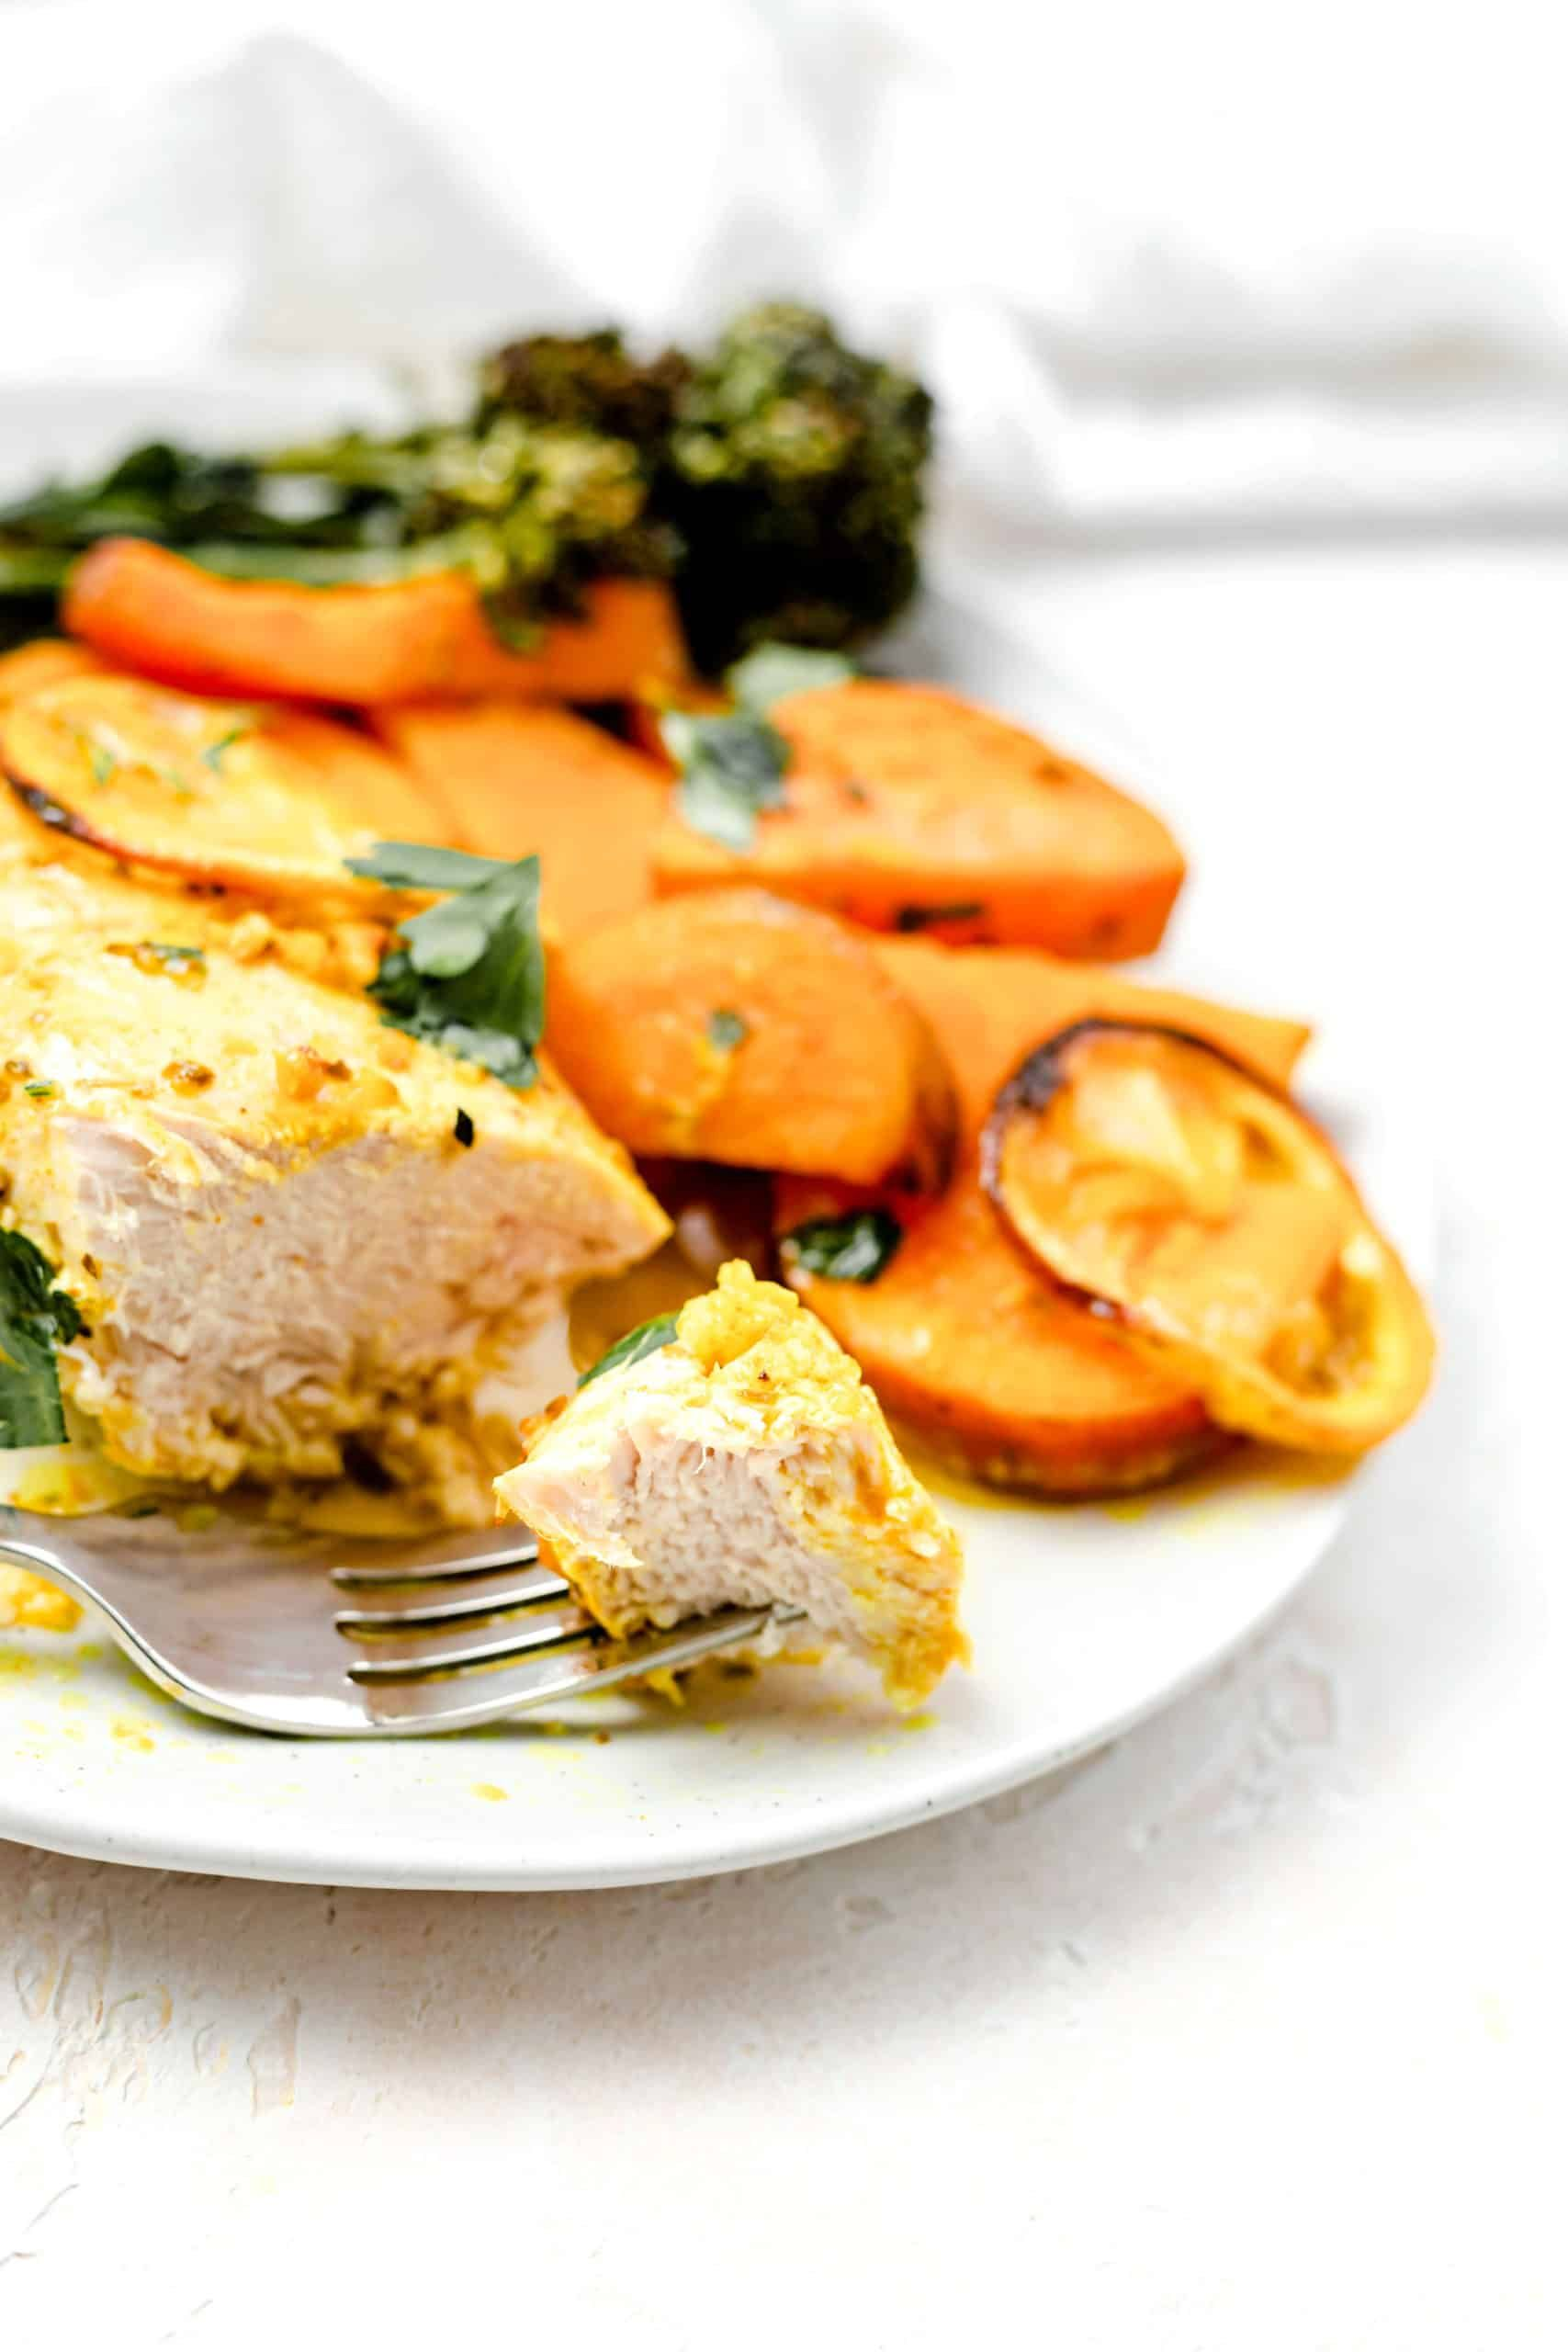 Healthy Lemon Chicken And Sweet Potatoes Baked Ambrosia Recipe In 2020 Healthy Lemon Chicken Recipe Healthy Lemon Chicken Sweet Potato Recipes Healthy